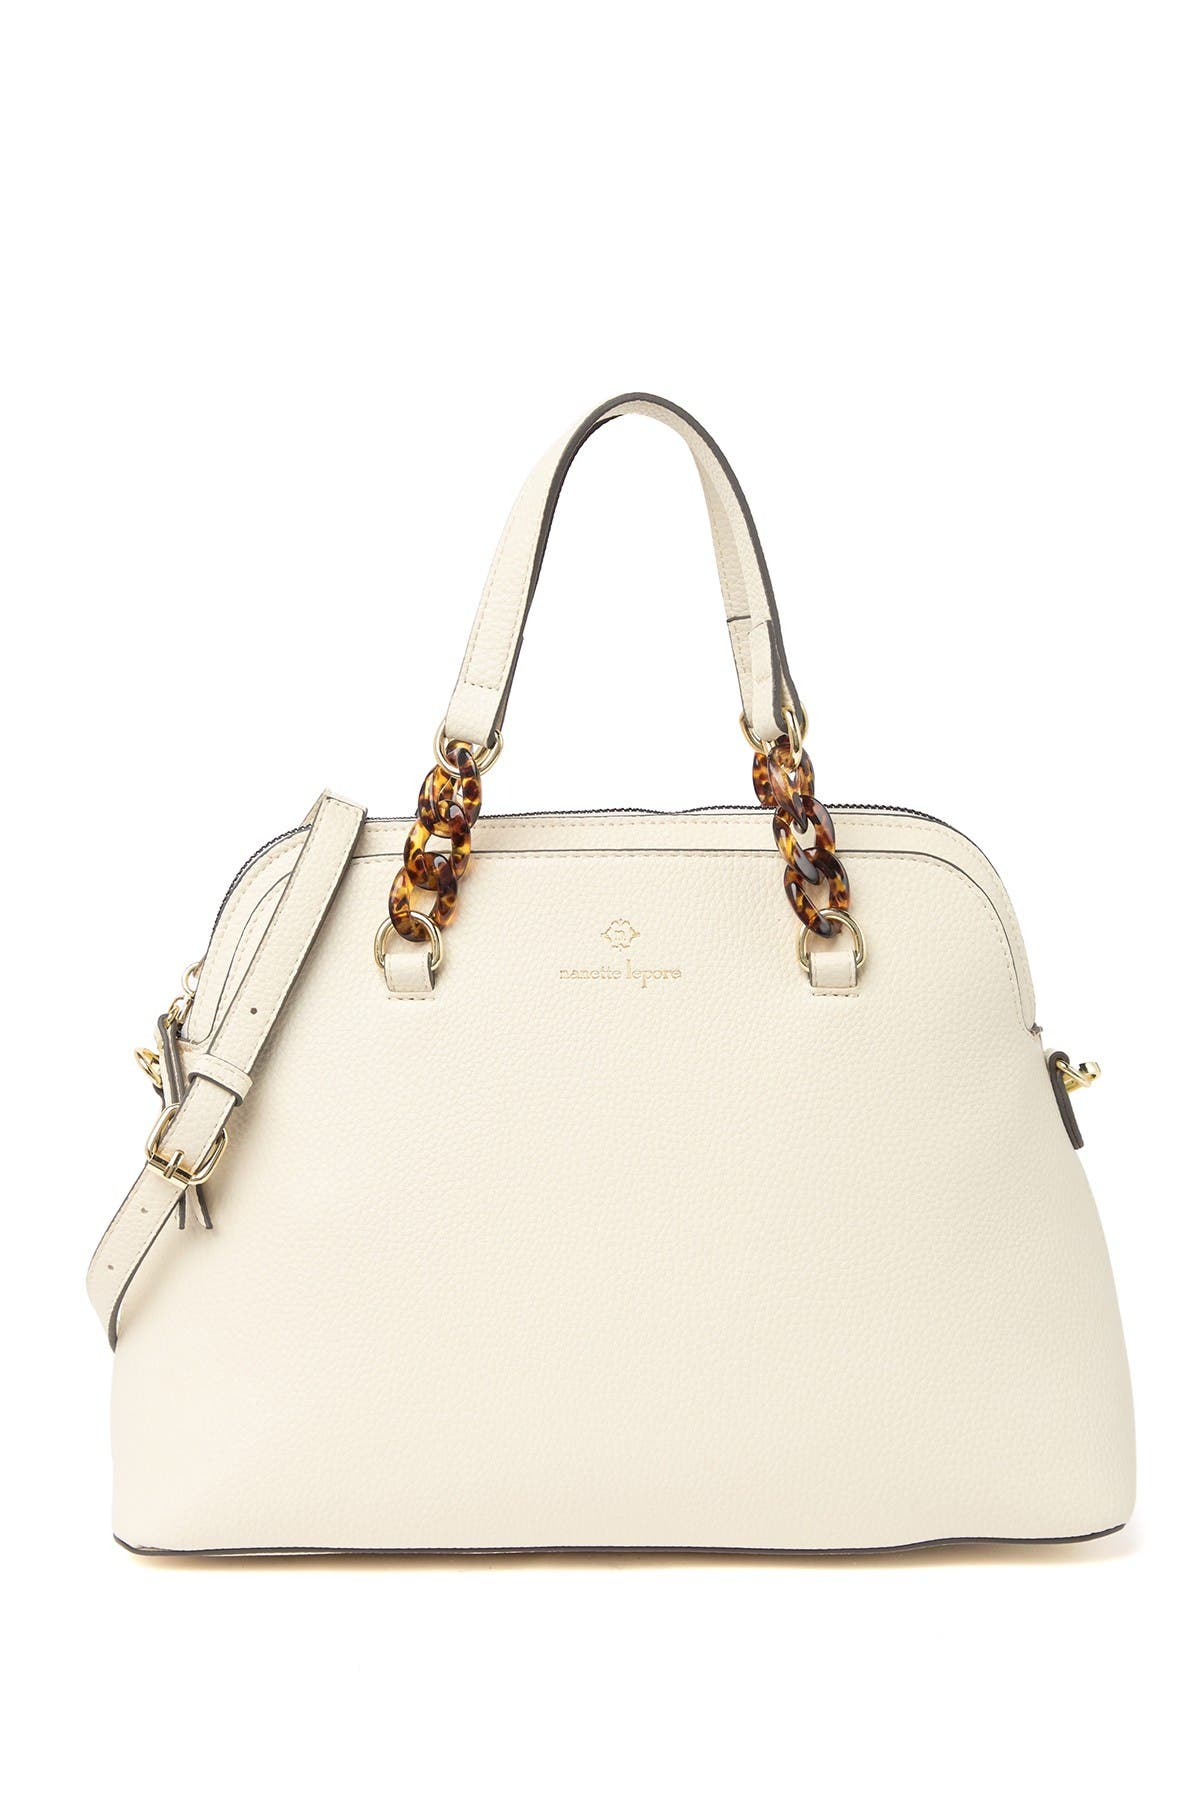 Image of Nanette Lepore Brinley Dome Satchel Bag